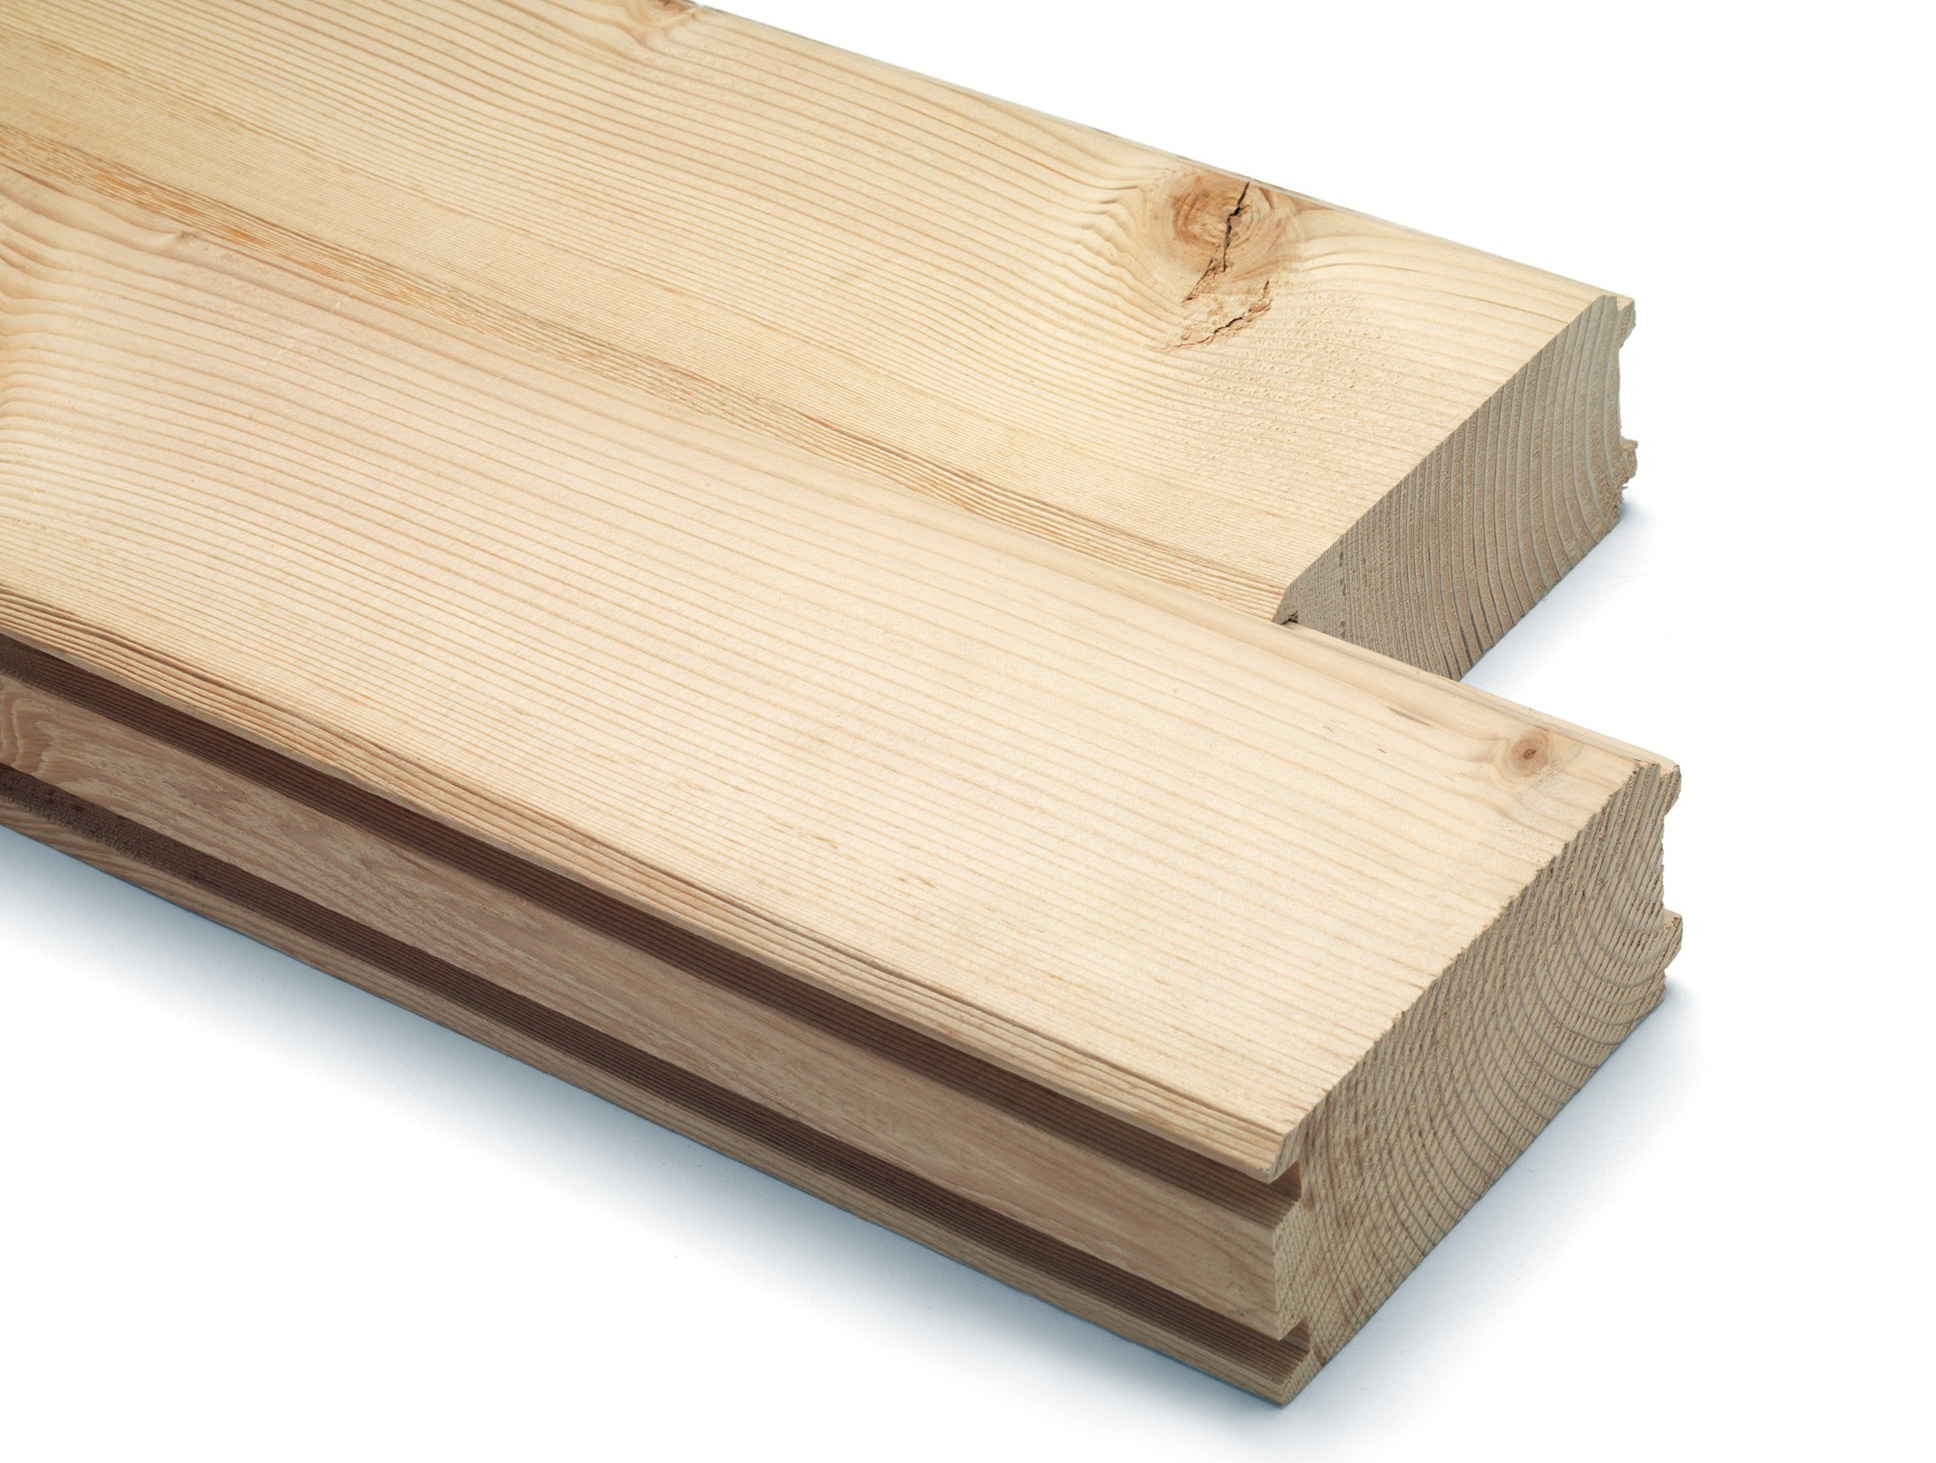 2x6 Tongue And Groove Roof Decking Span